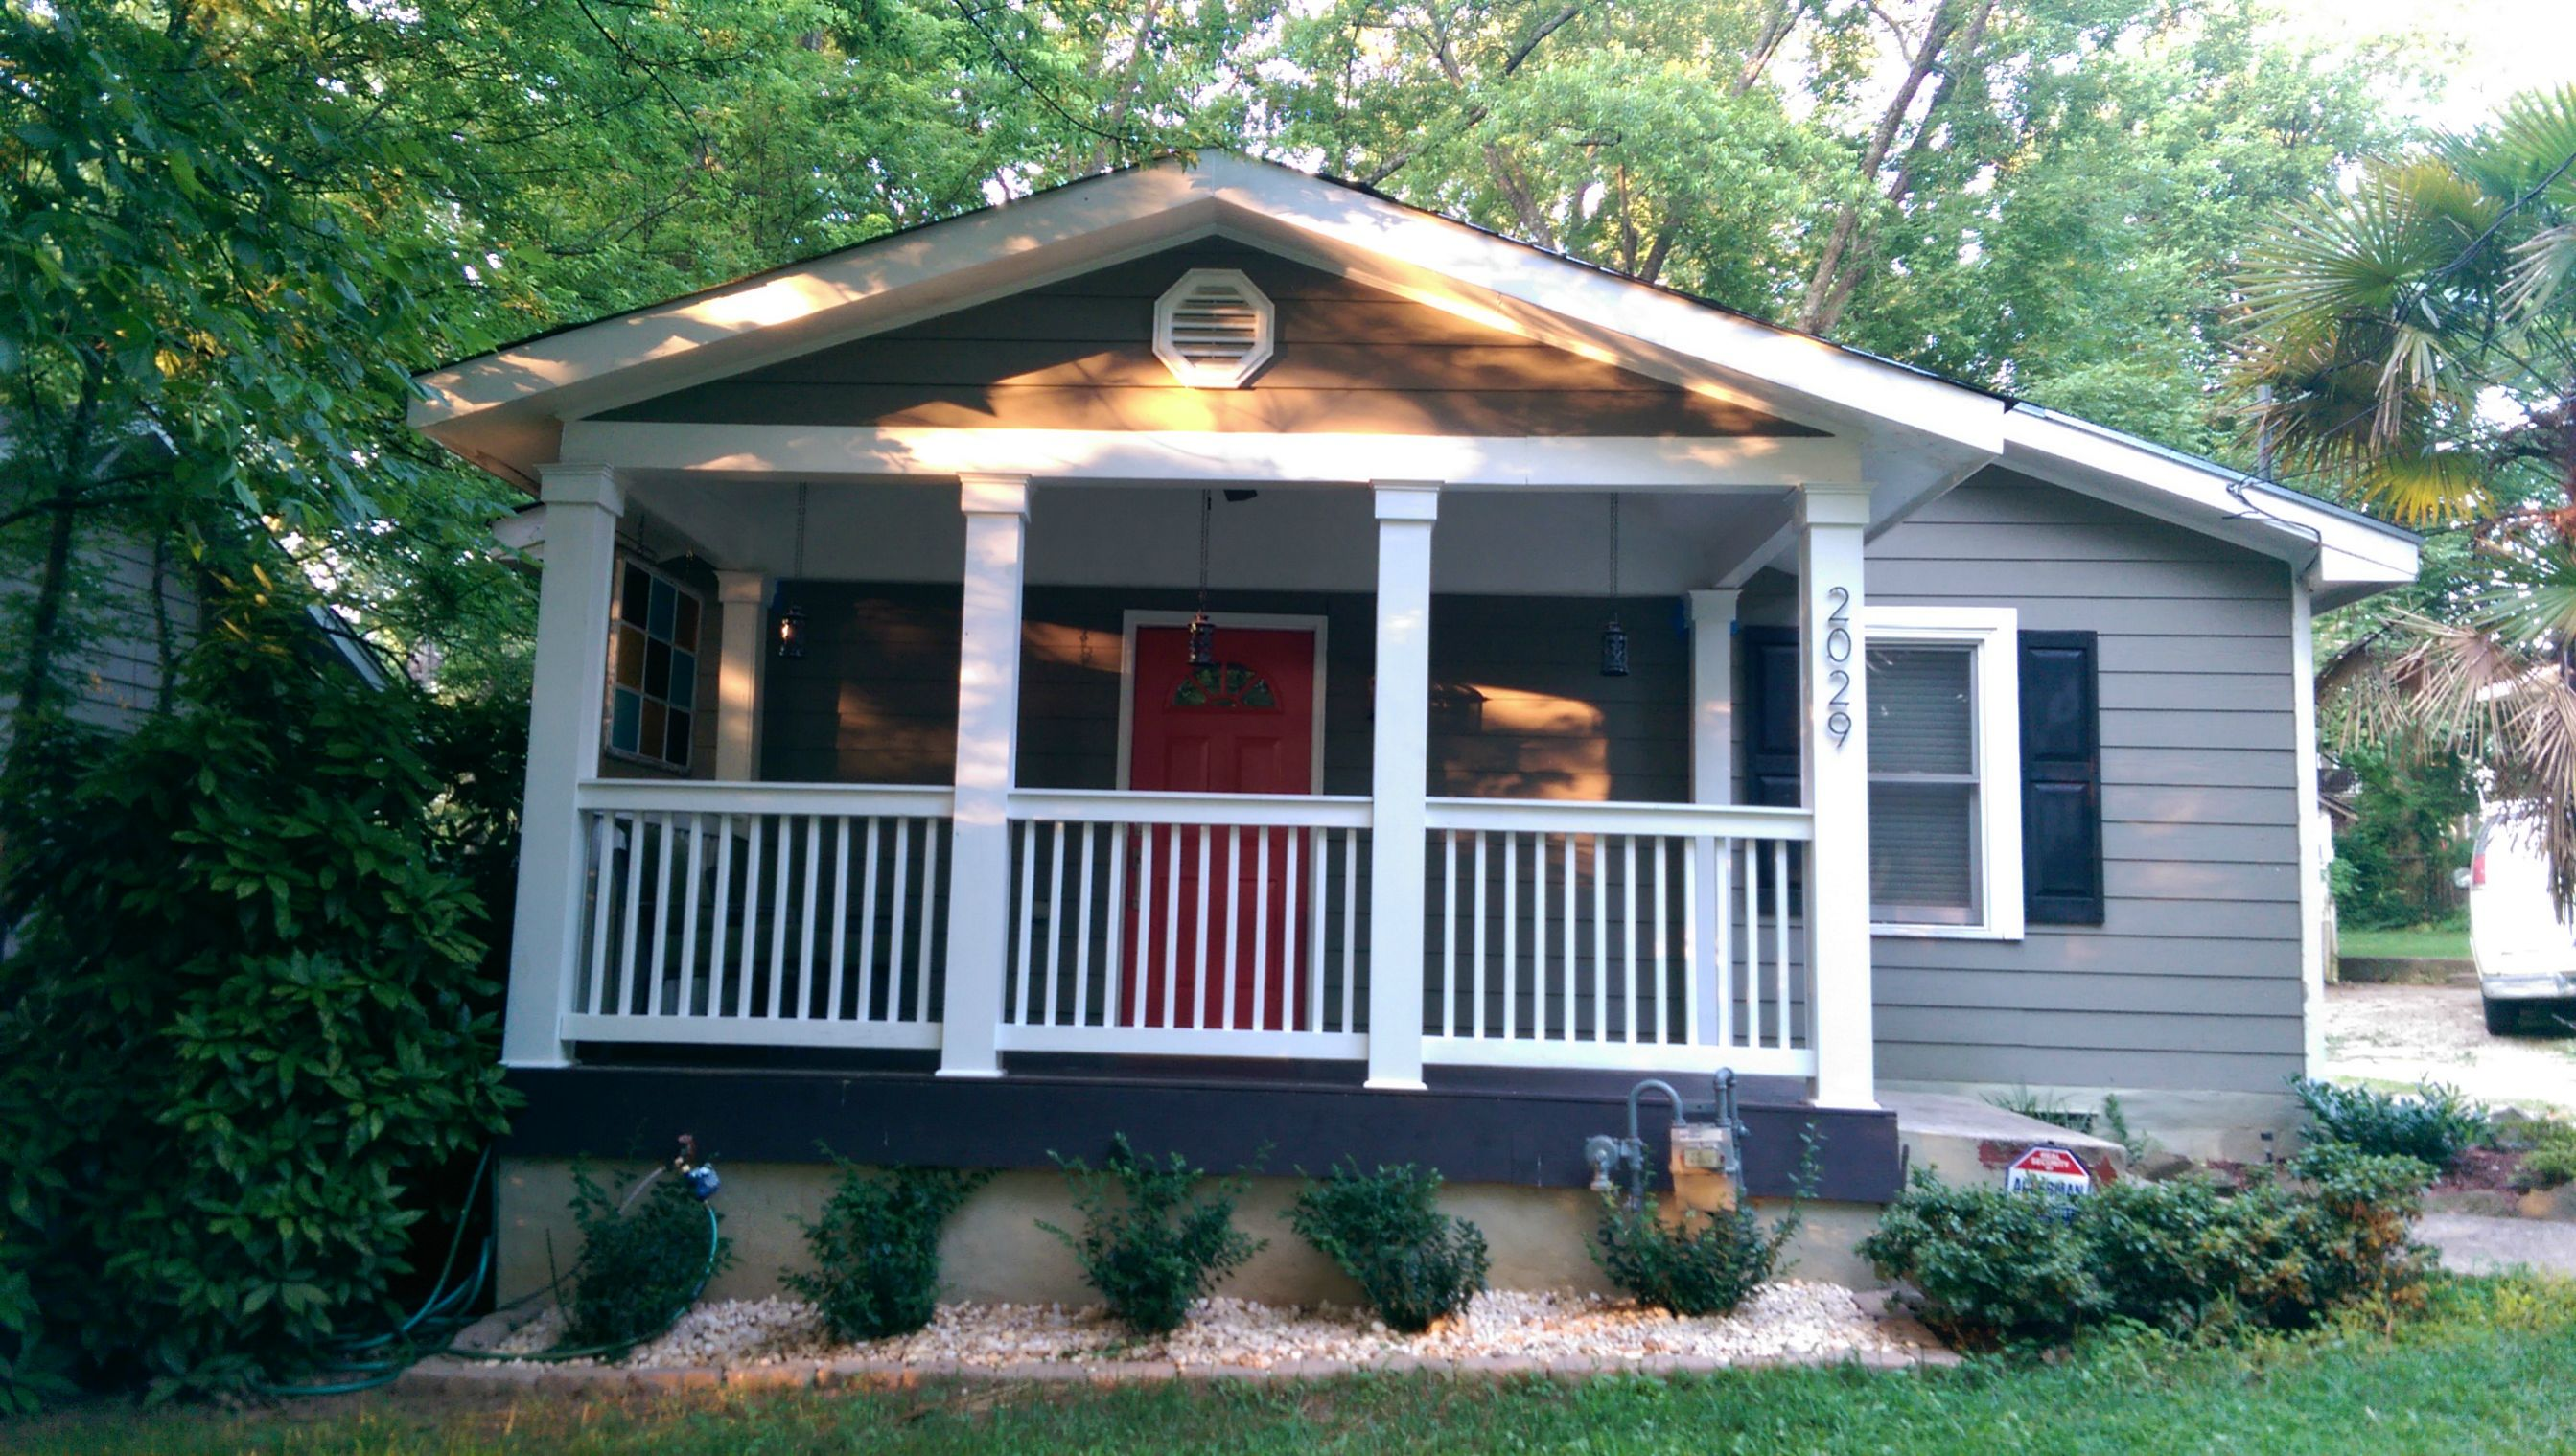 Decks And Porches Archives - Mobile Manufactured Home